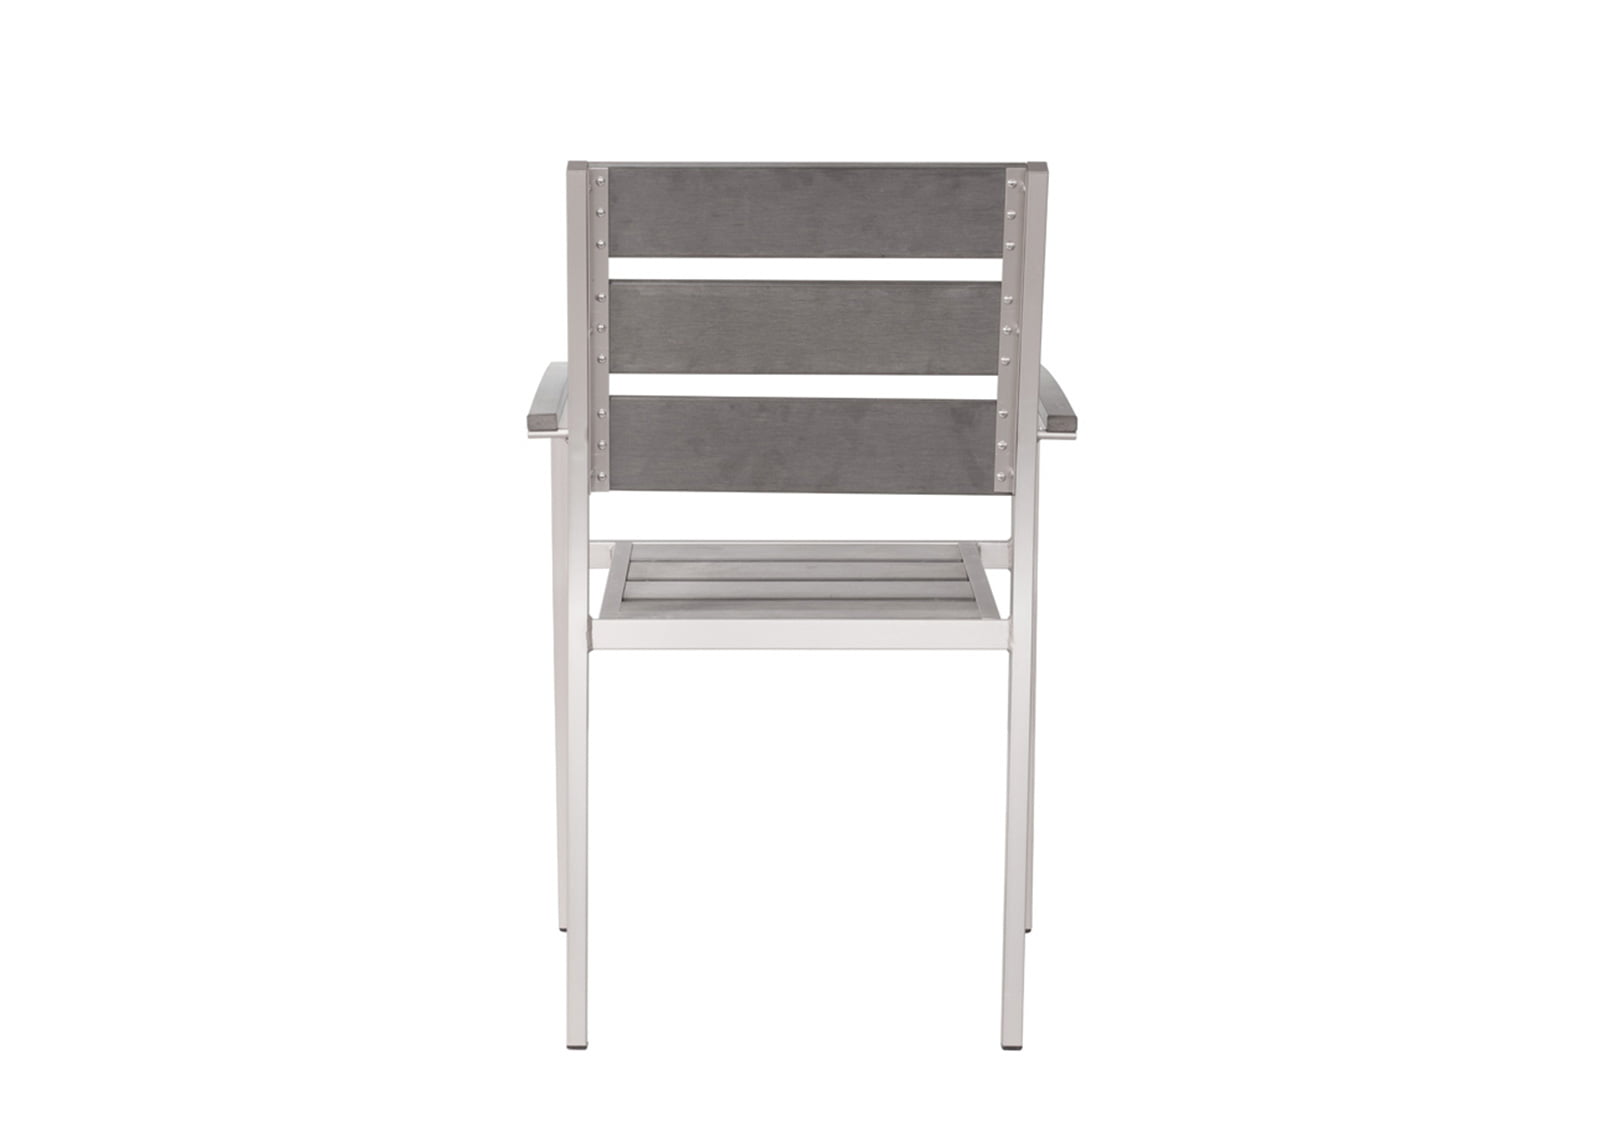 brushed aluminum chairs high chair tray cover metropolitan dining slated arm